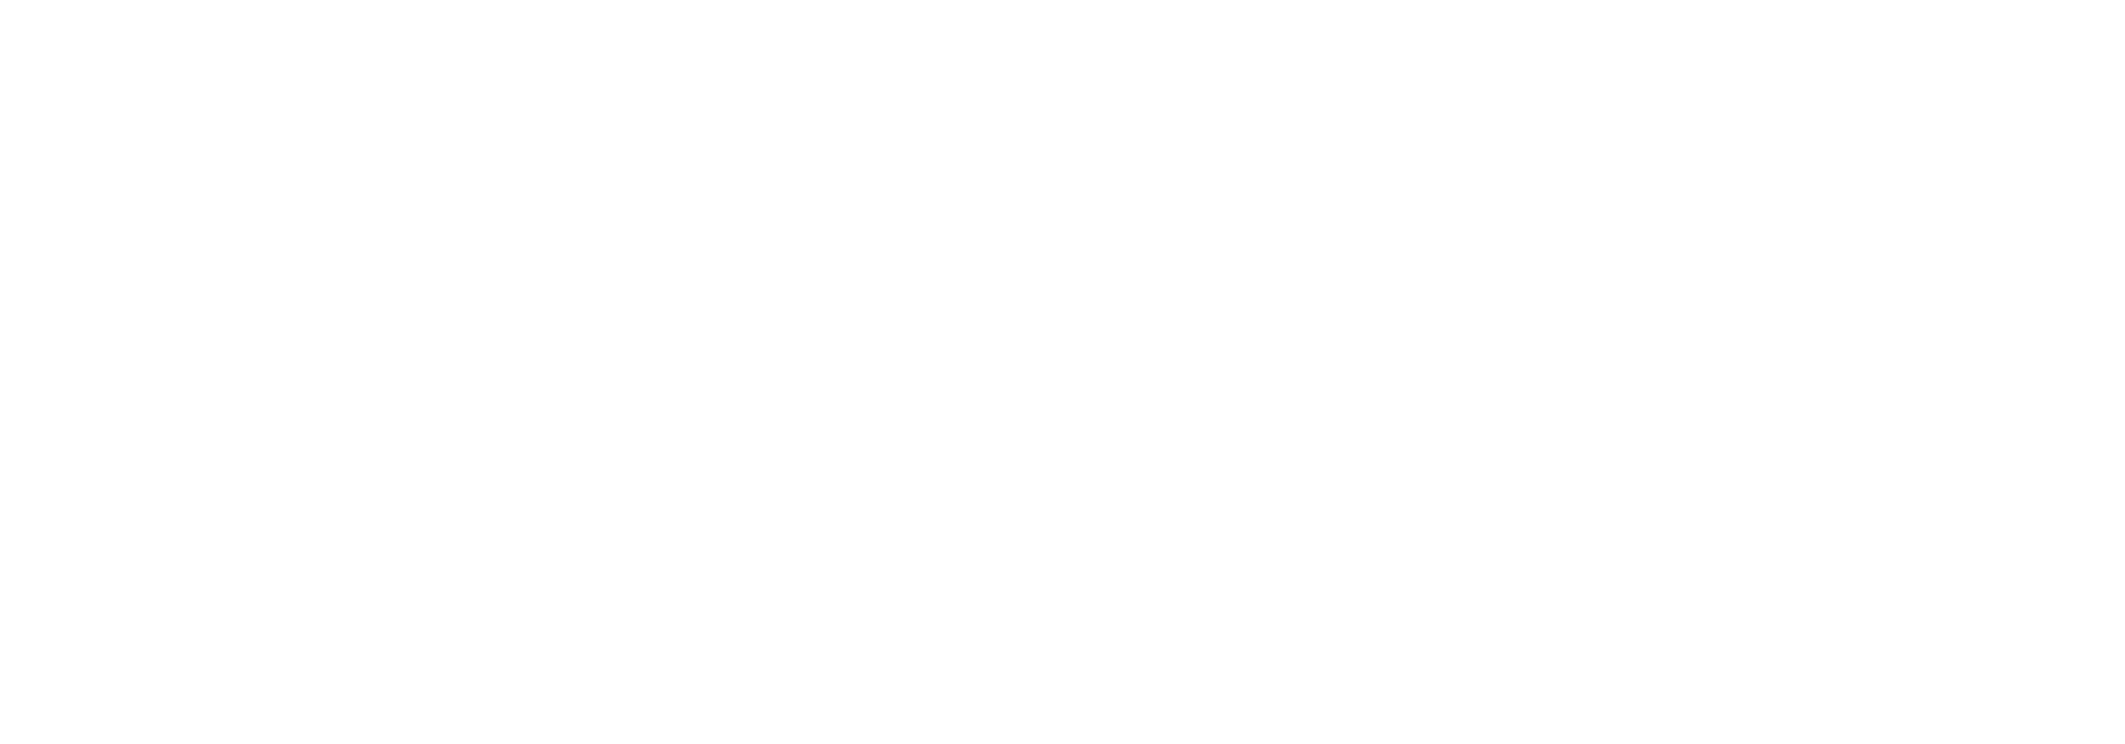 The ArcShark